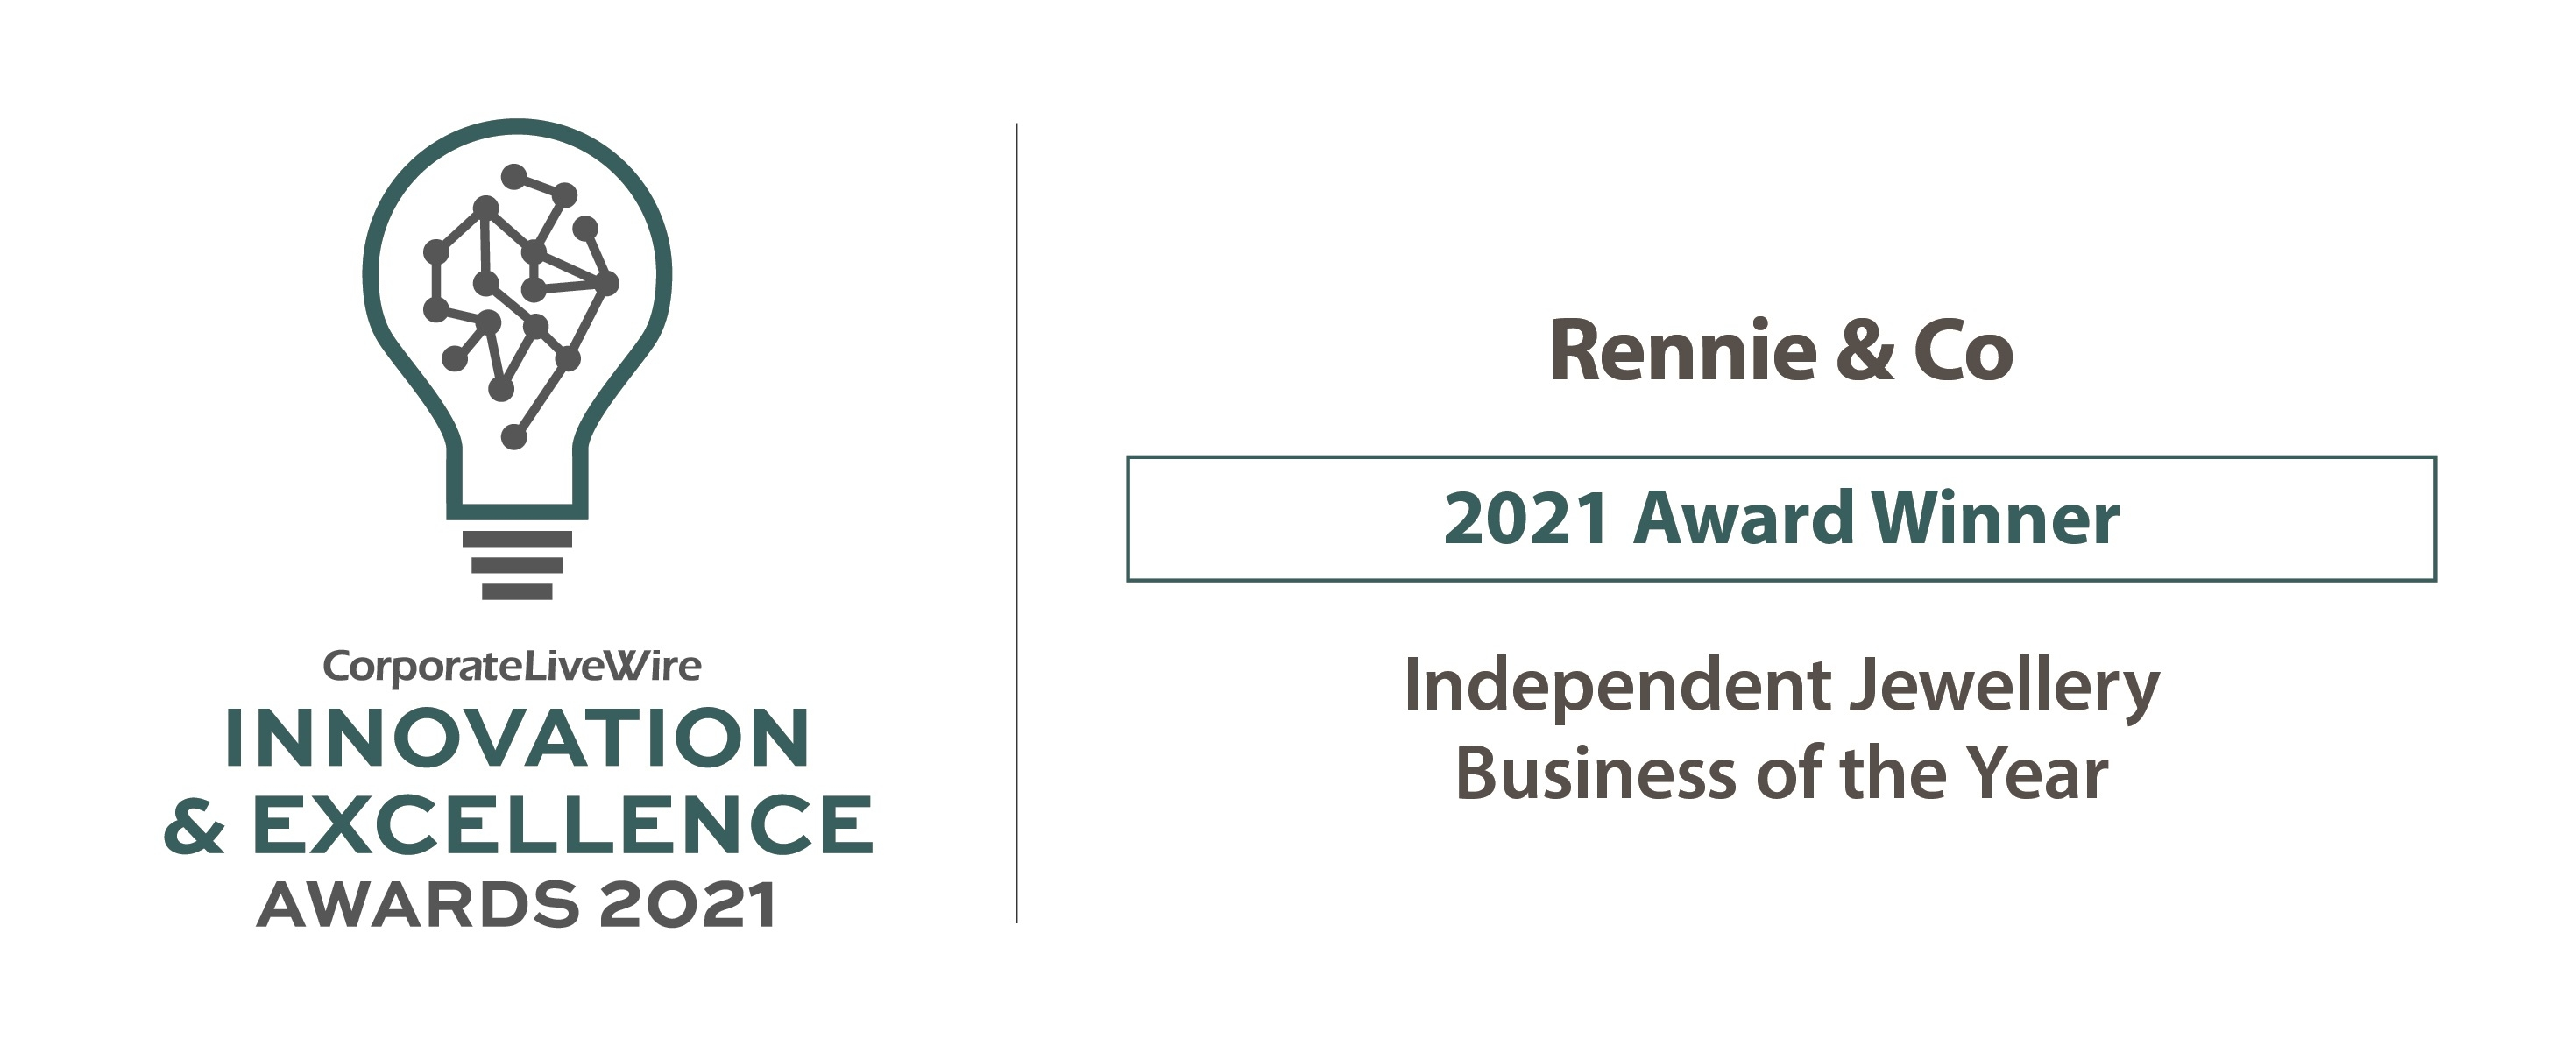 Independent Jewellery Business of the Year 2021